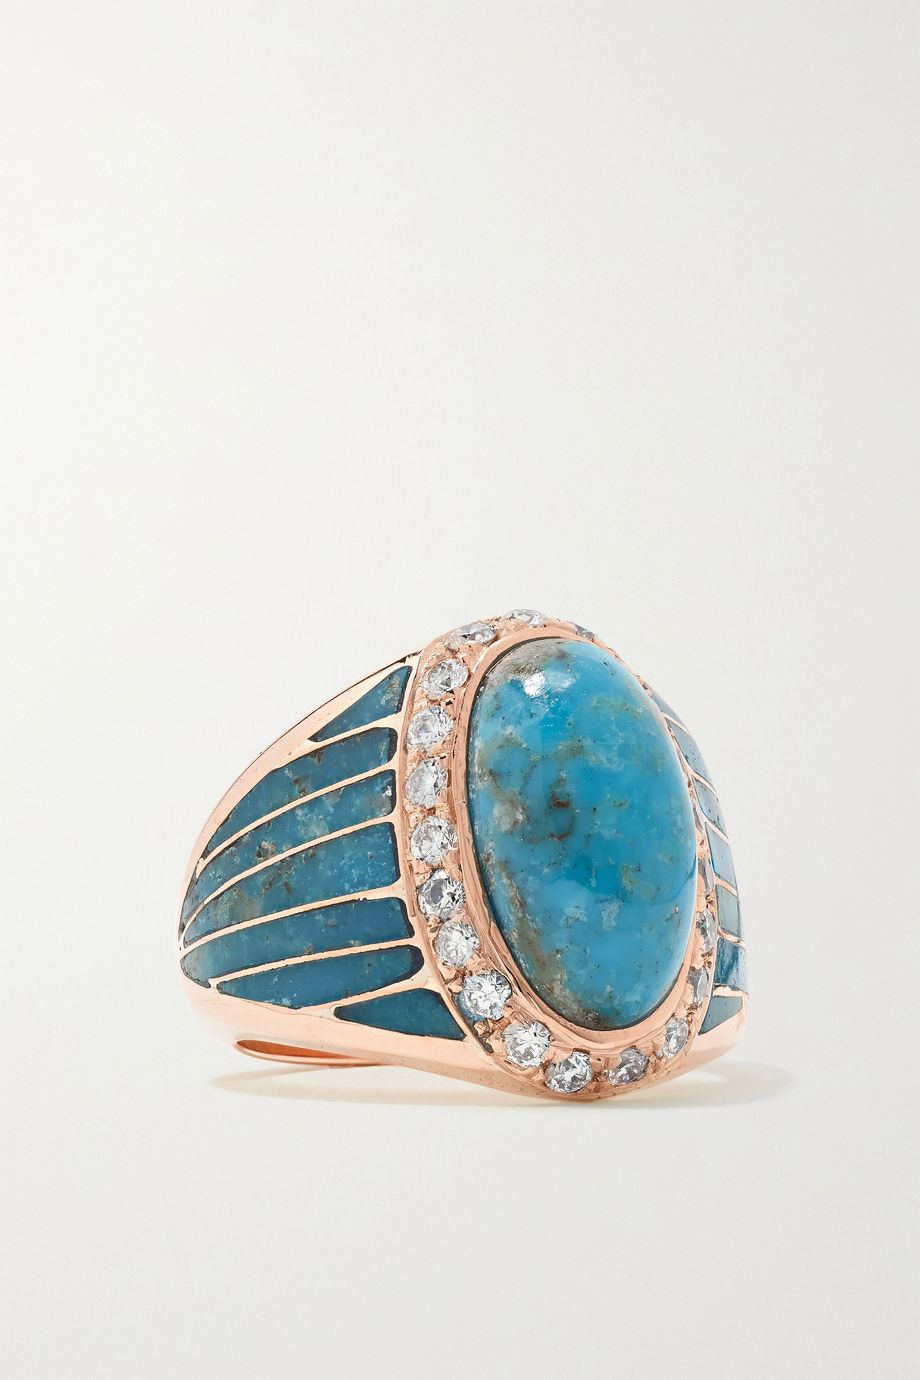 Jacquie Aiche 14-karat rose gold, turquoise and diamond ring